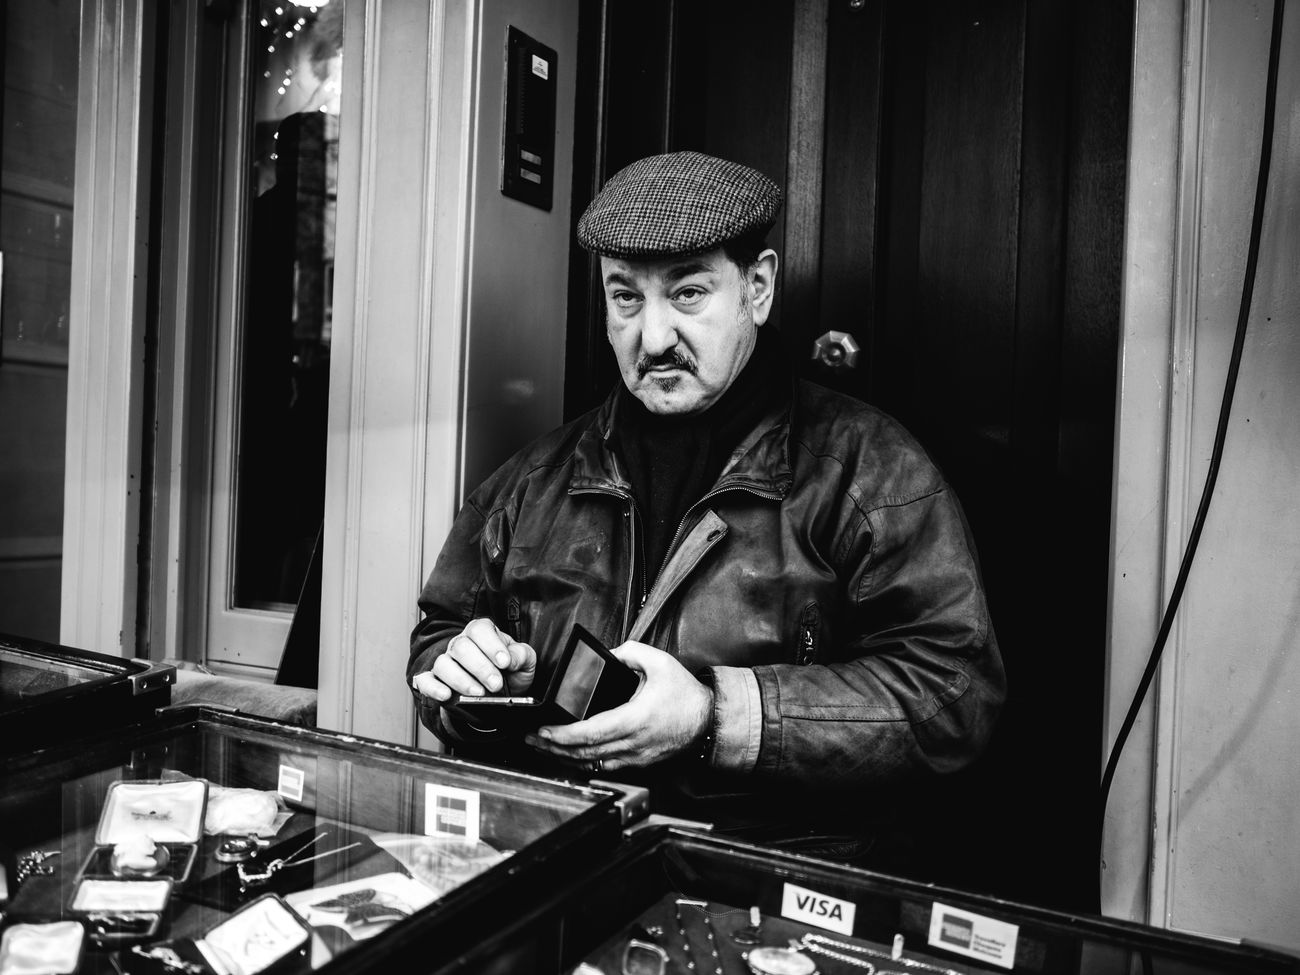 Street Trader. Streetlife Maxgor.com Candid Lifestyles Cıty Rawstreets 35mm Monochrome Photography Prime Lens London City Life Stranger Street Photography Olympus Pen F Black And White Photography Street Portrait Portrait Trader Market Market Trader Notting Hill Portobello Market